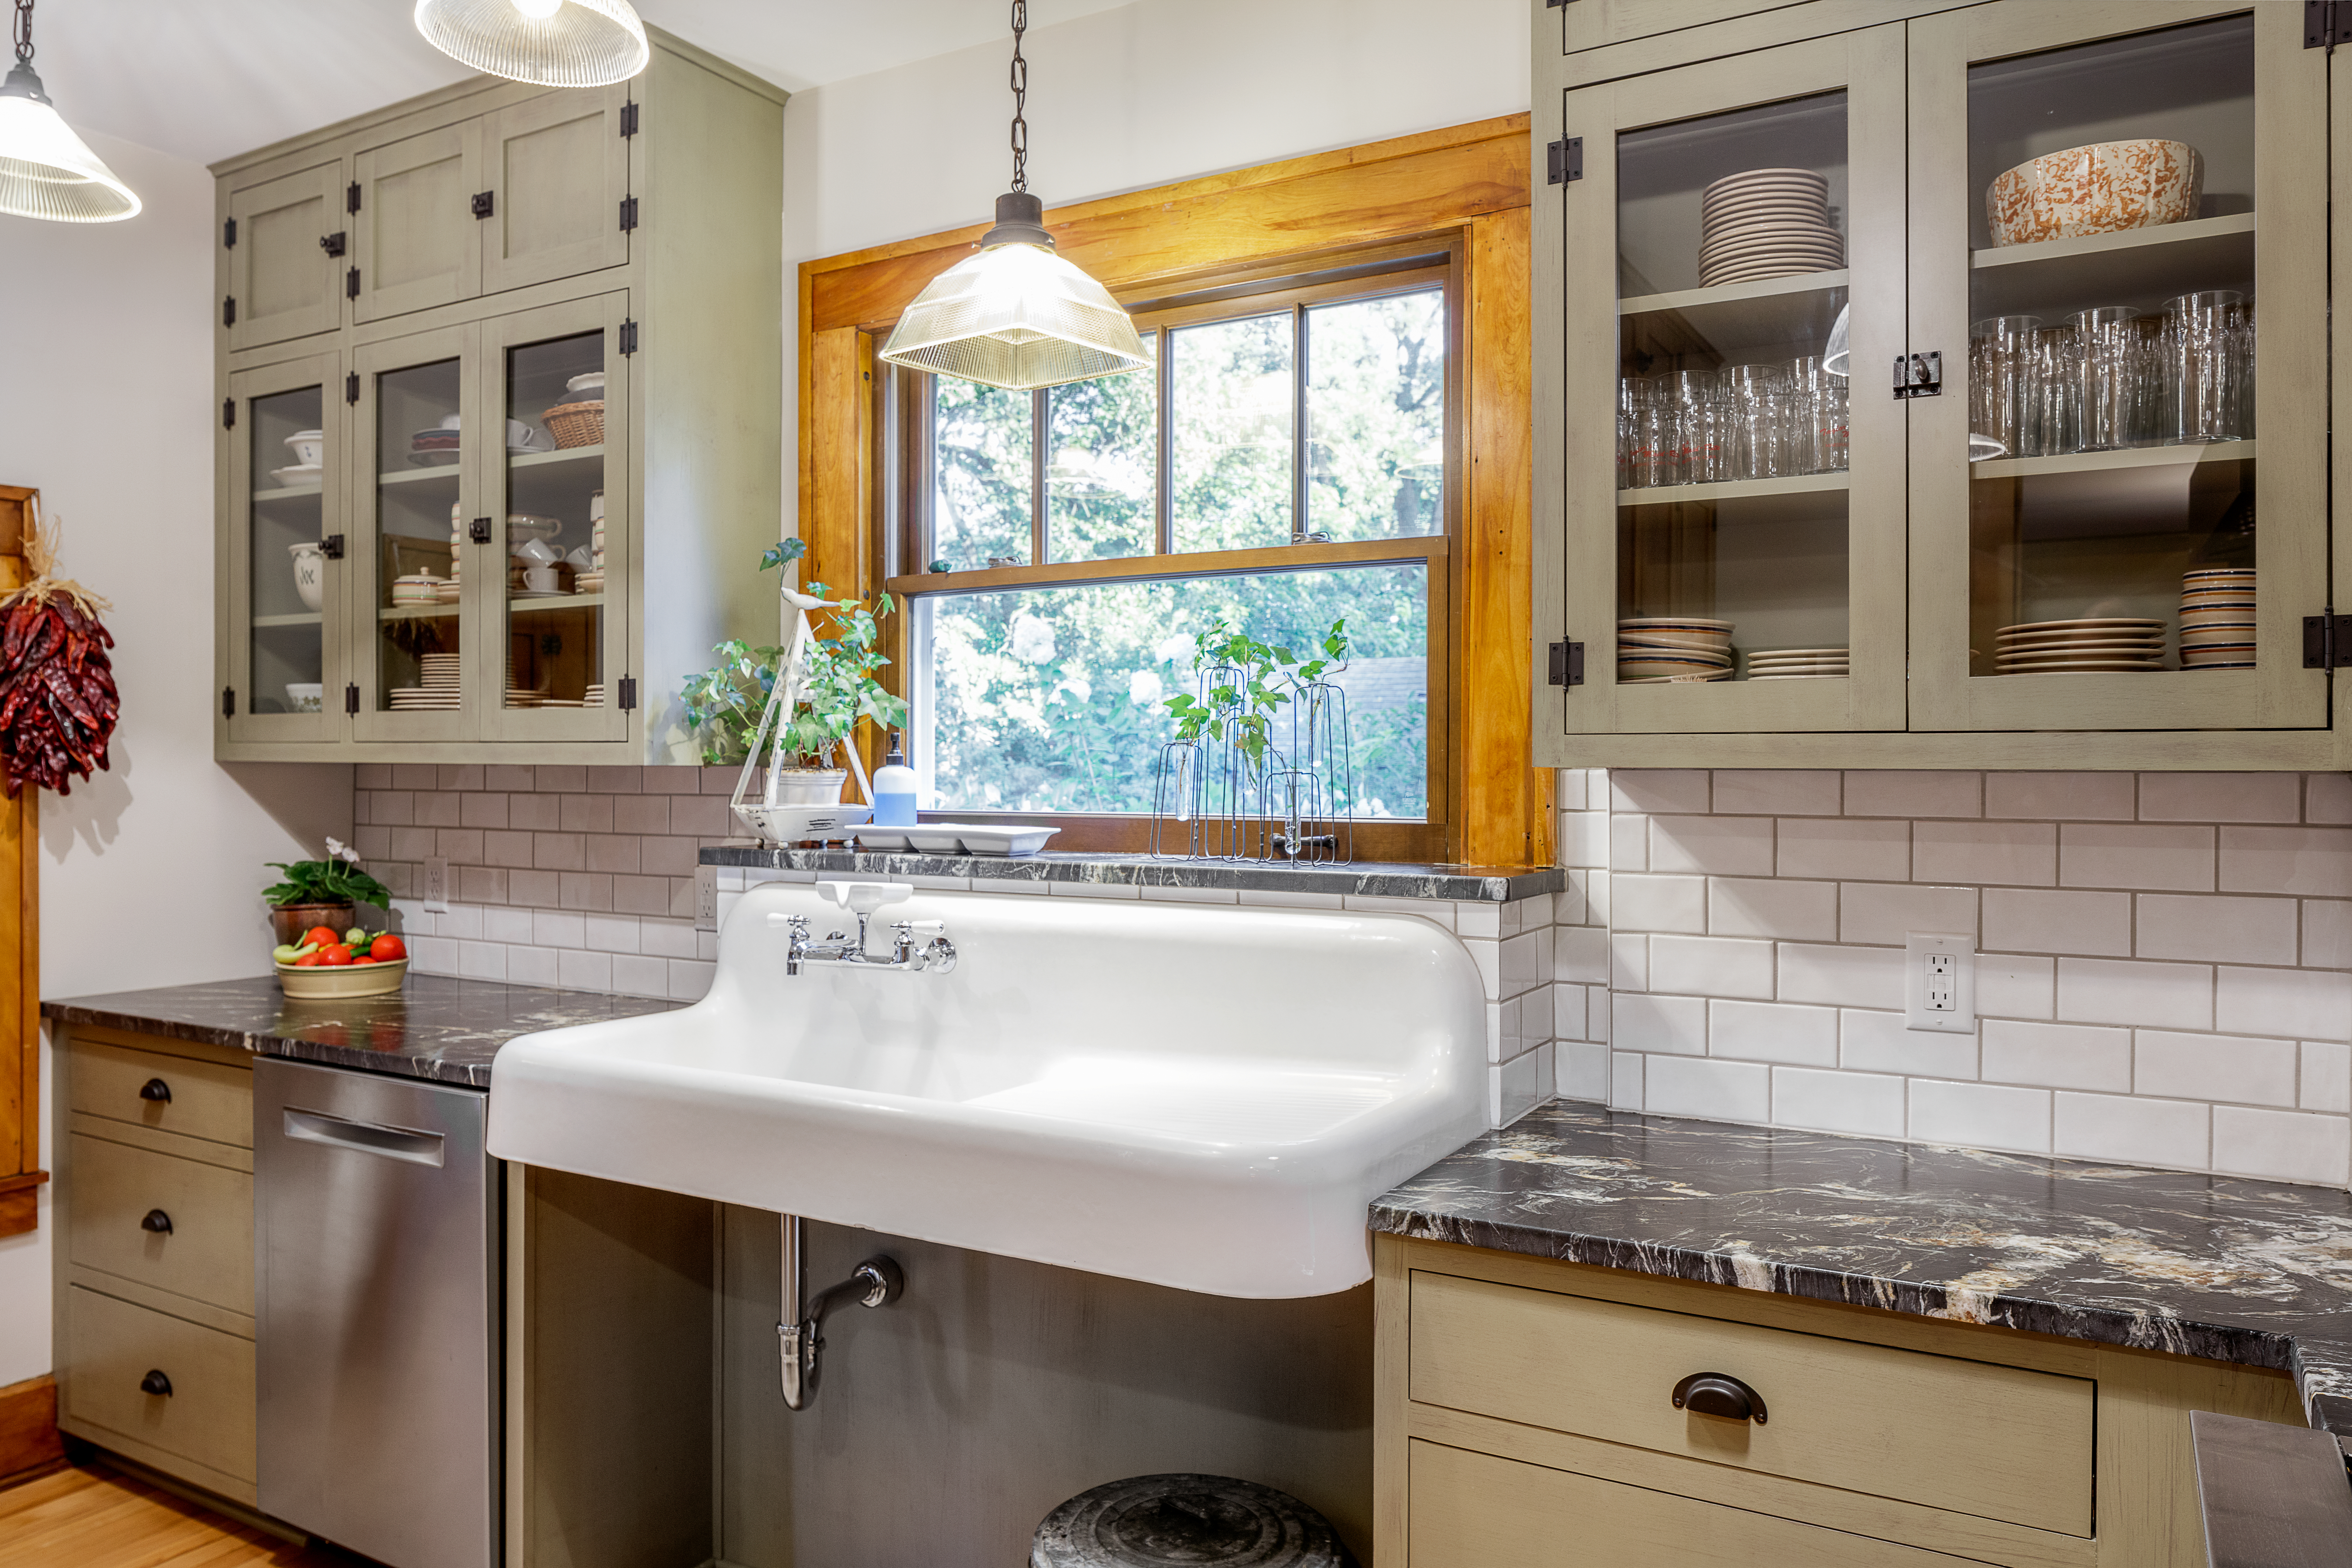 Mbg Renovation Home Remodeling In Des Moines Ia